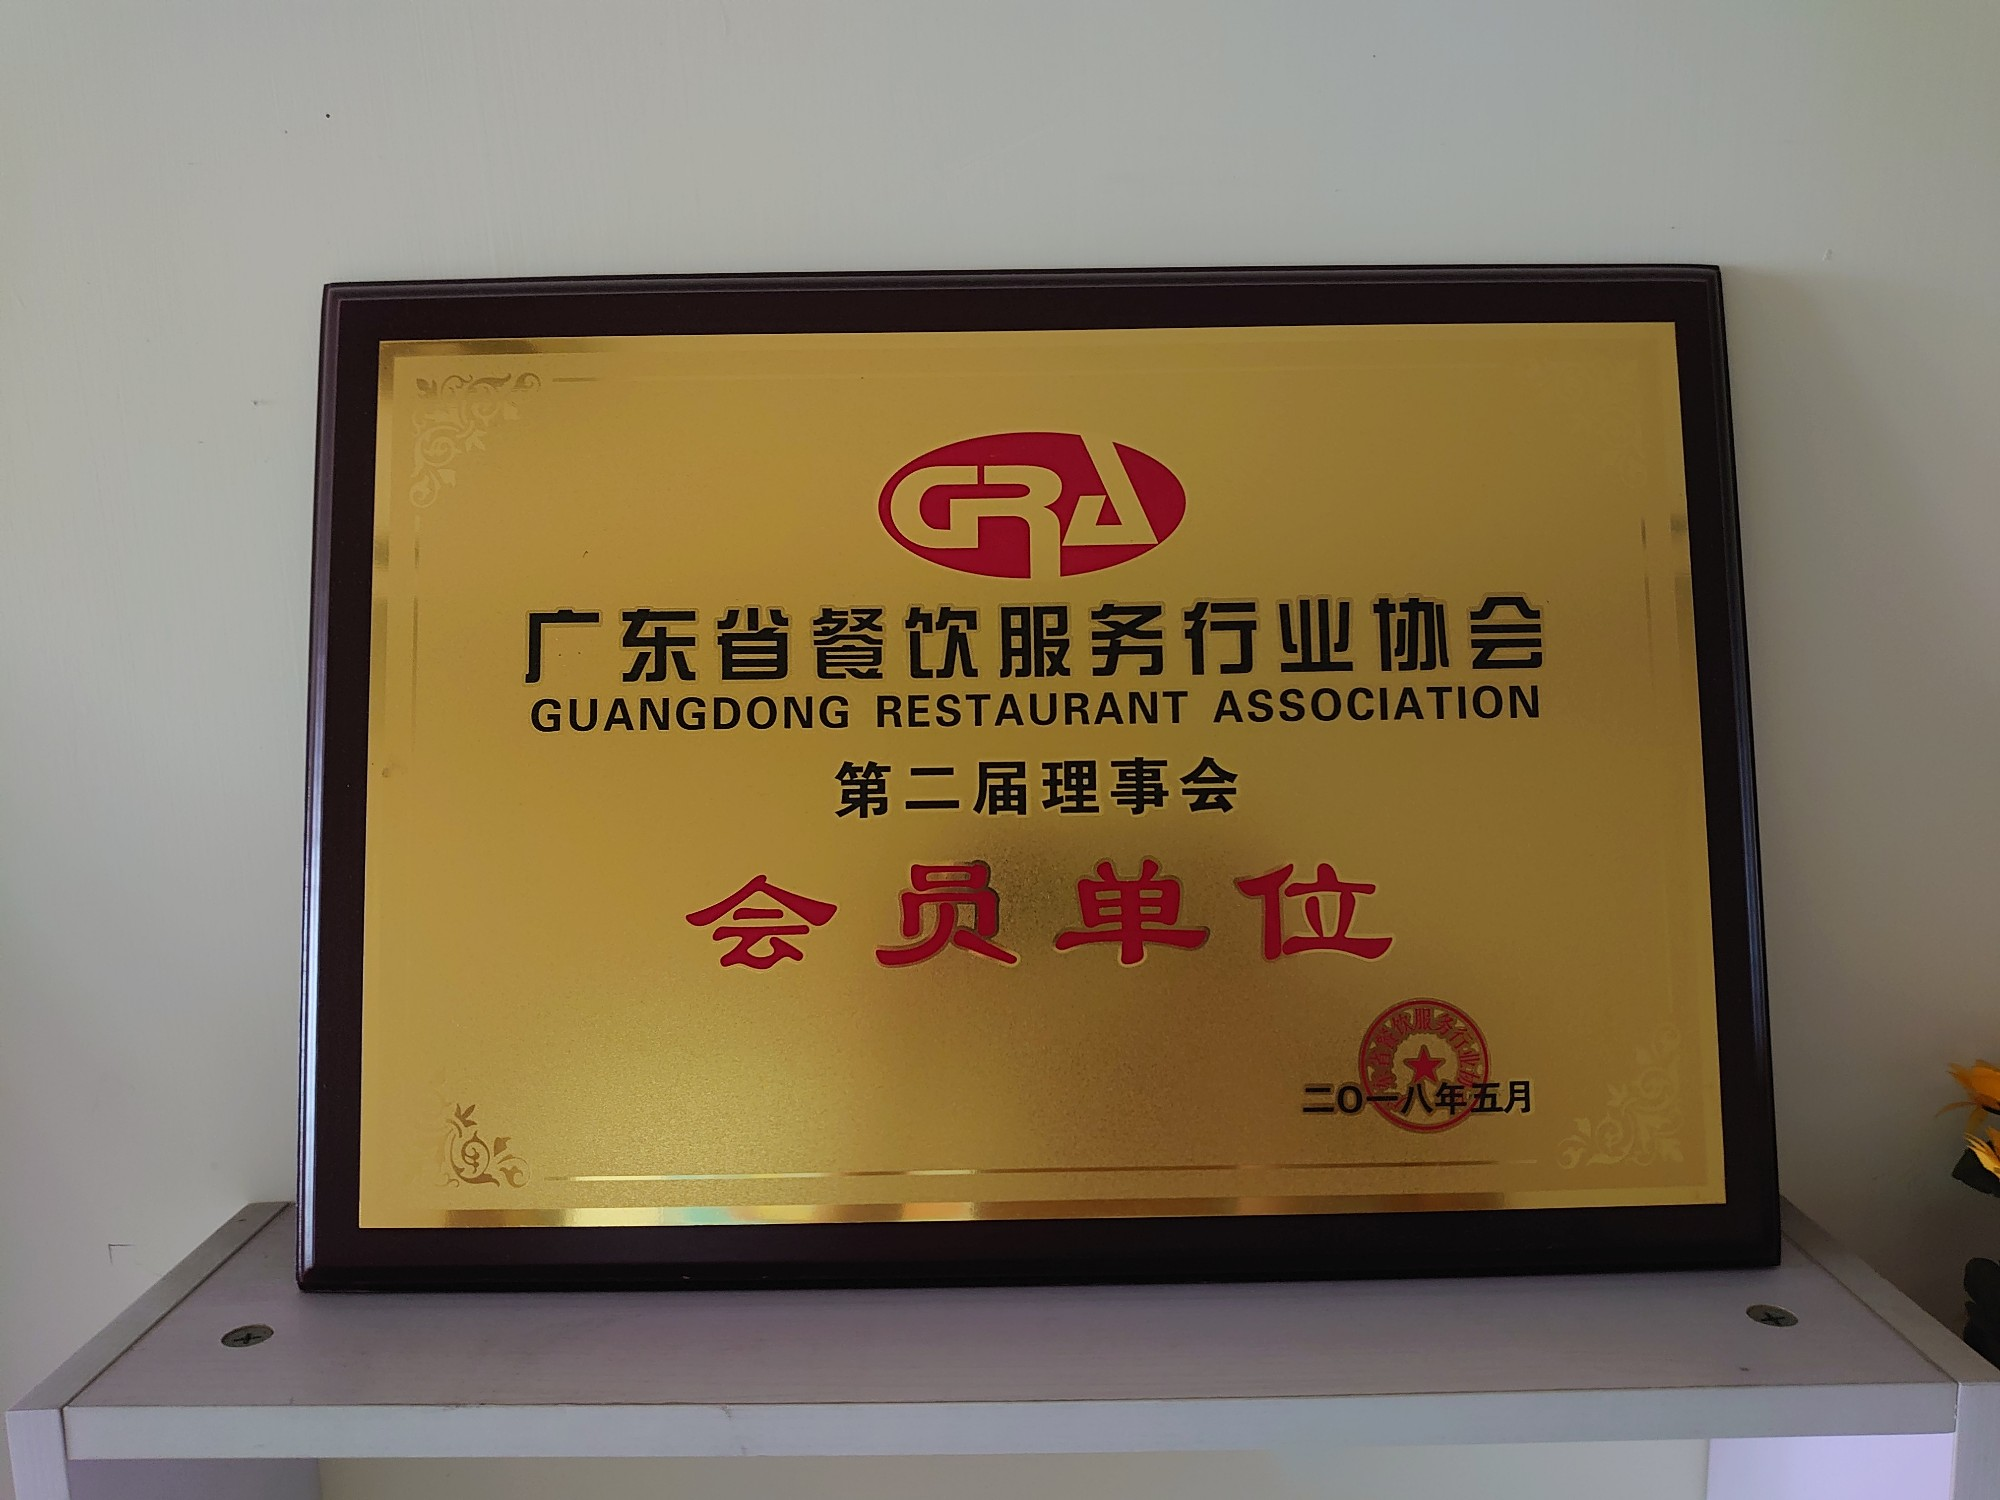 Guangdong Catering Service Association